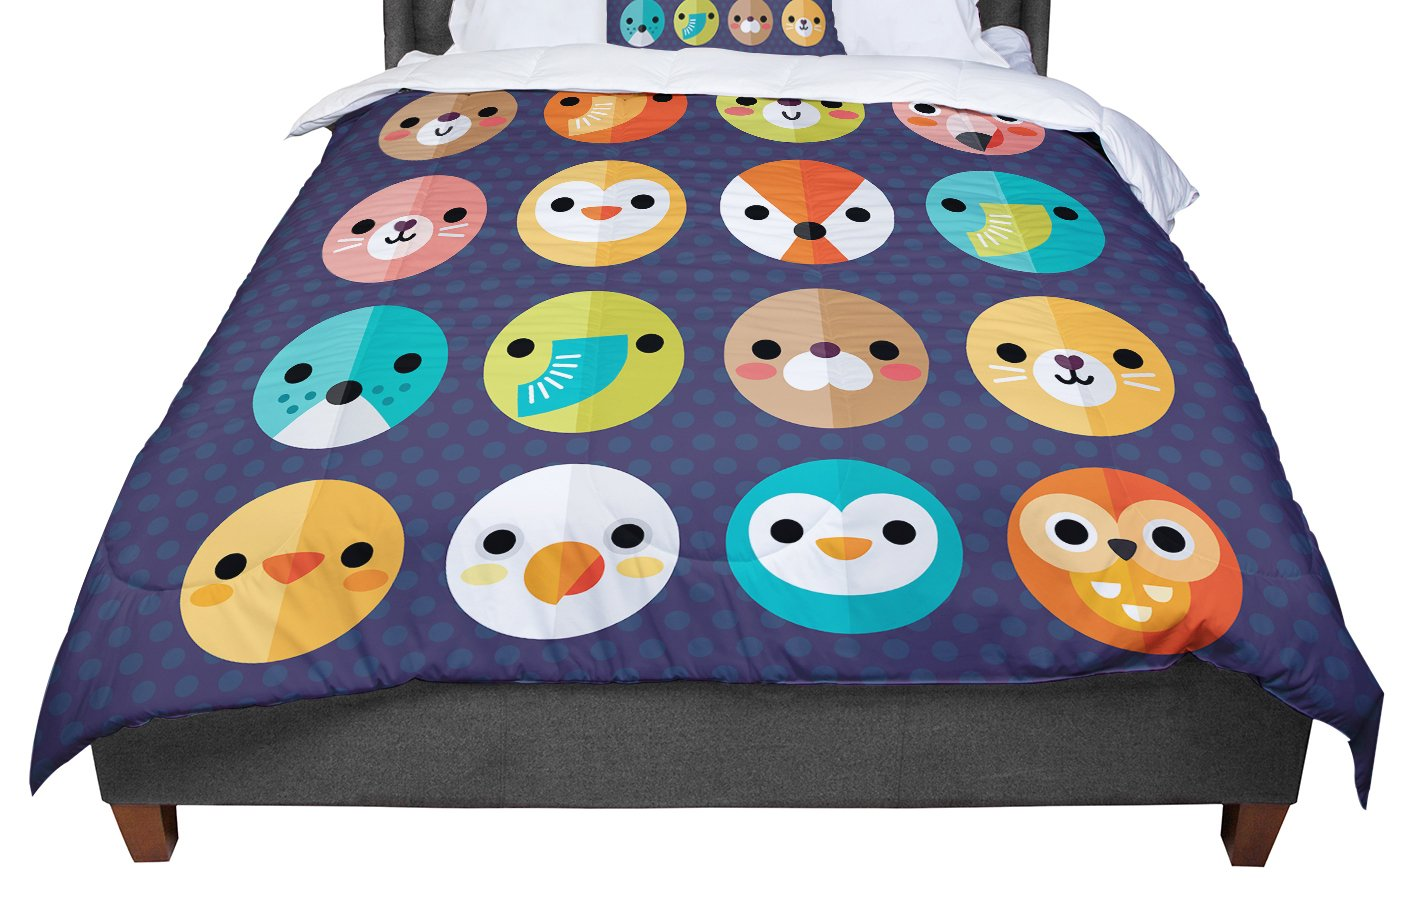 Cal King Comforter KESS InHouse Daisy Beatrice Smiley Faces Animals King 104 X 88